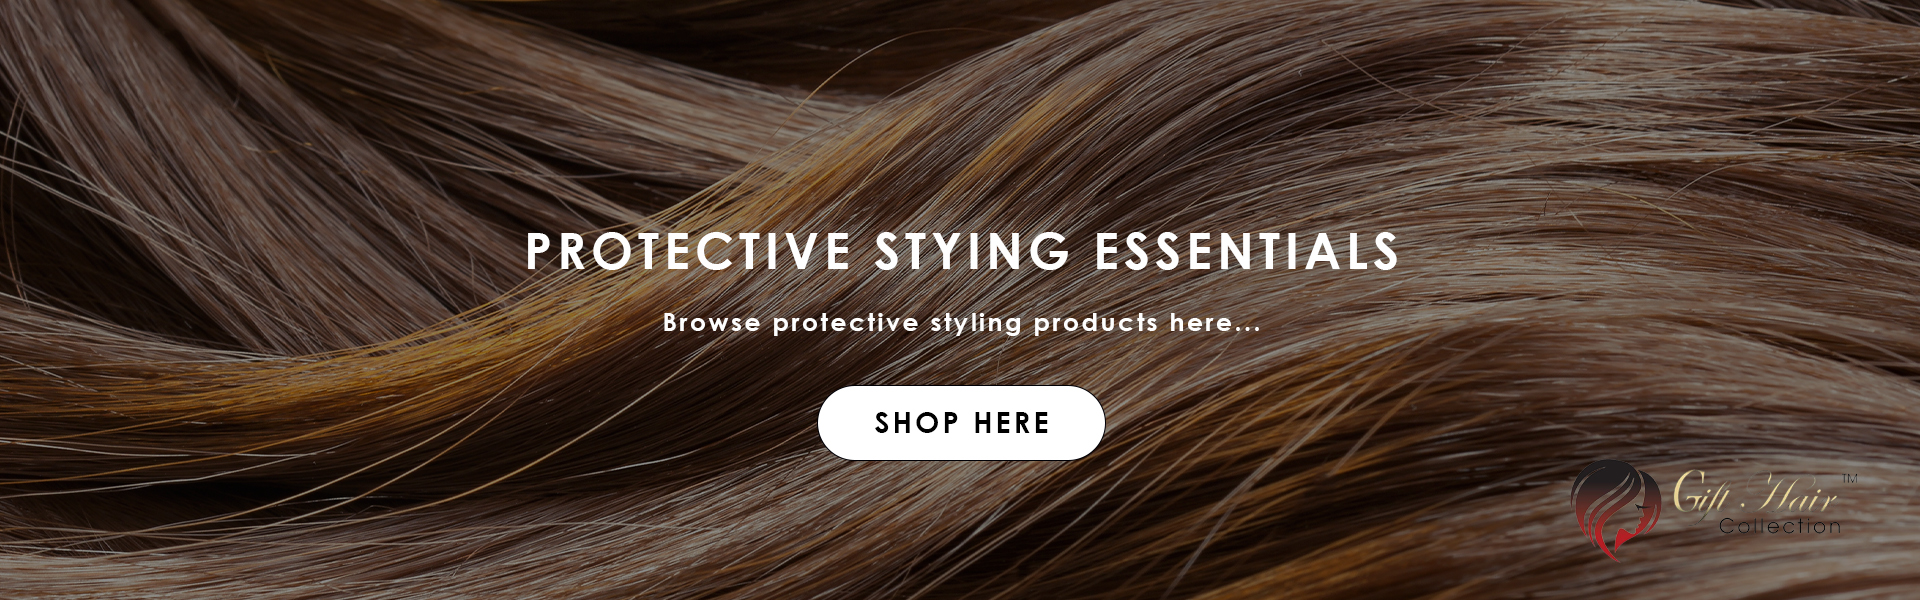 Protective styling products